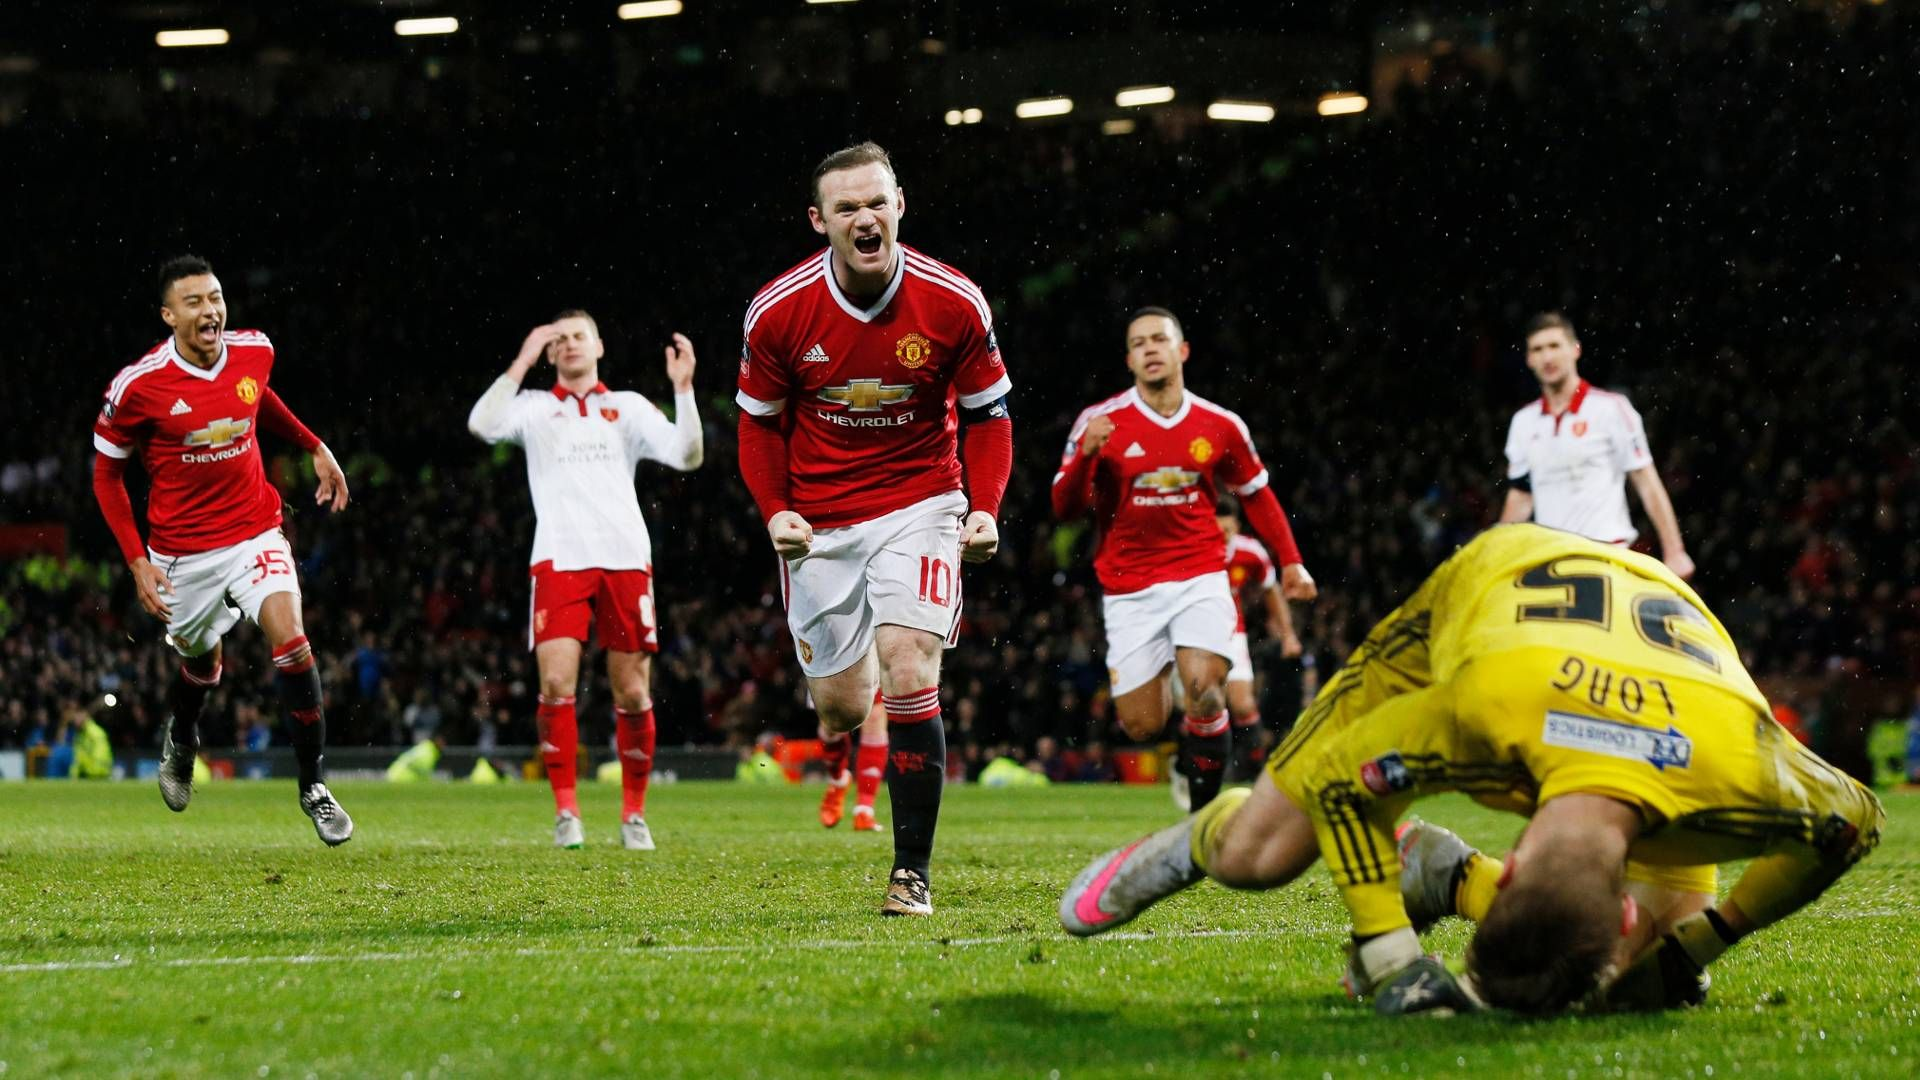 Rooney scores against Sheffield United. [1920x1080